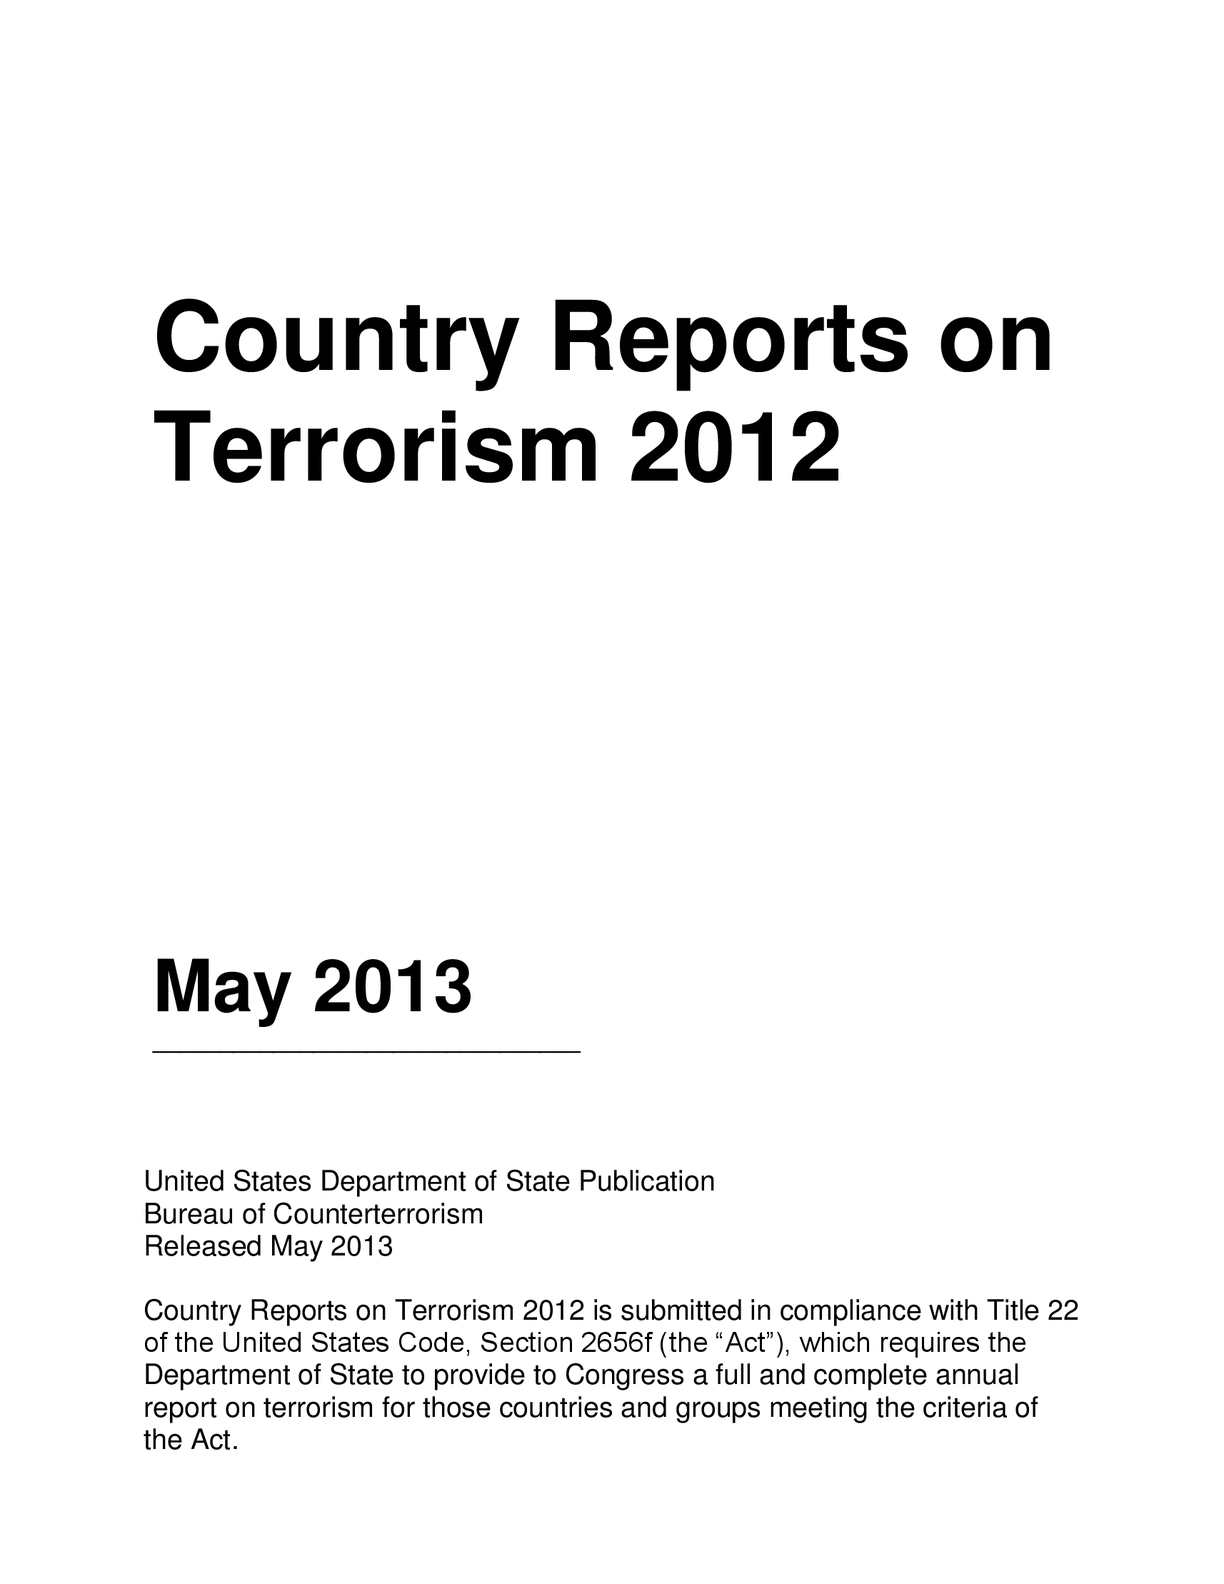 Calaméo - Country Reports on Terrorism 2012